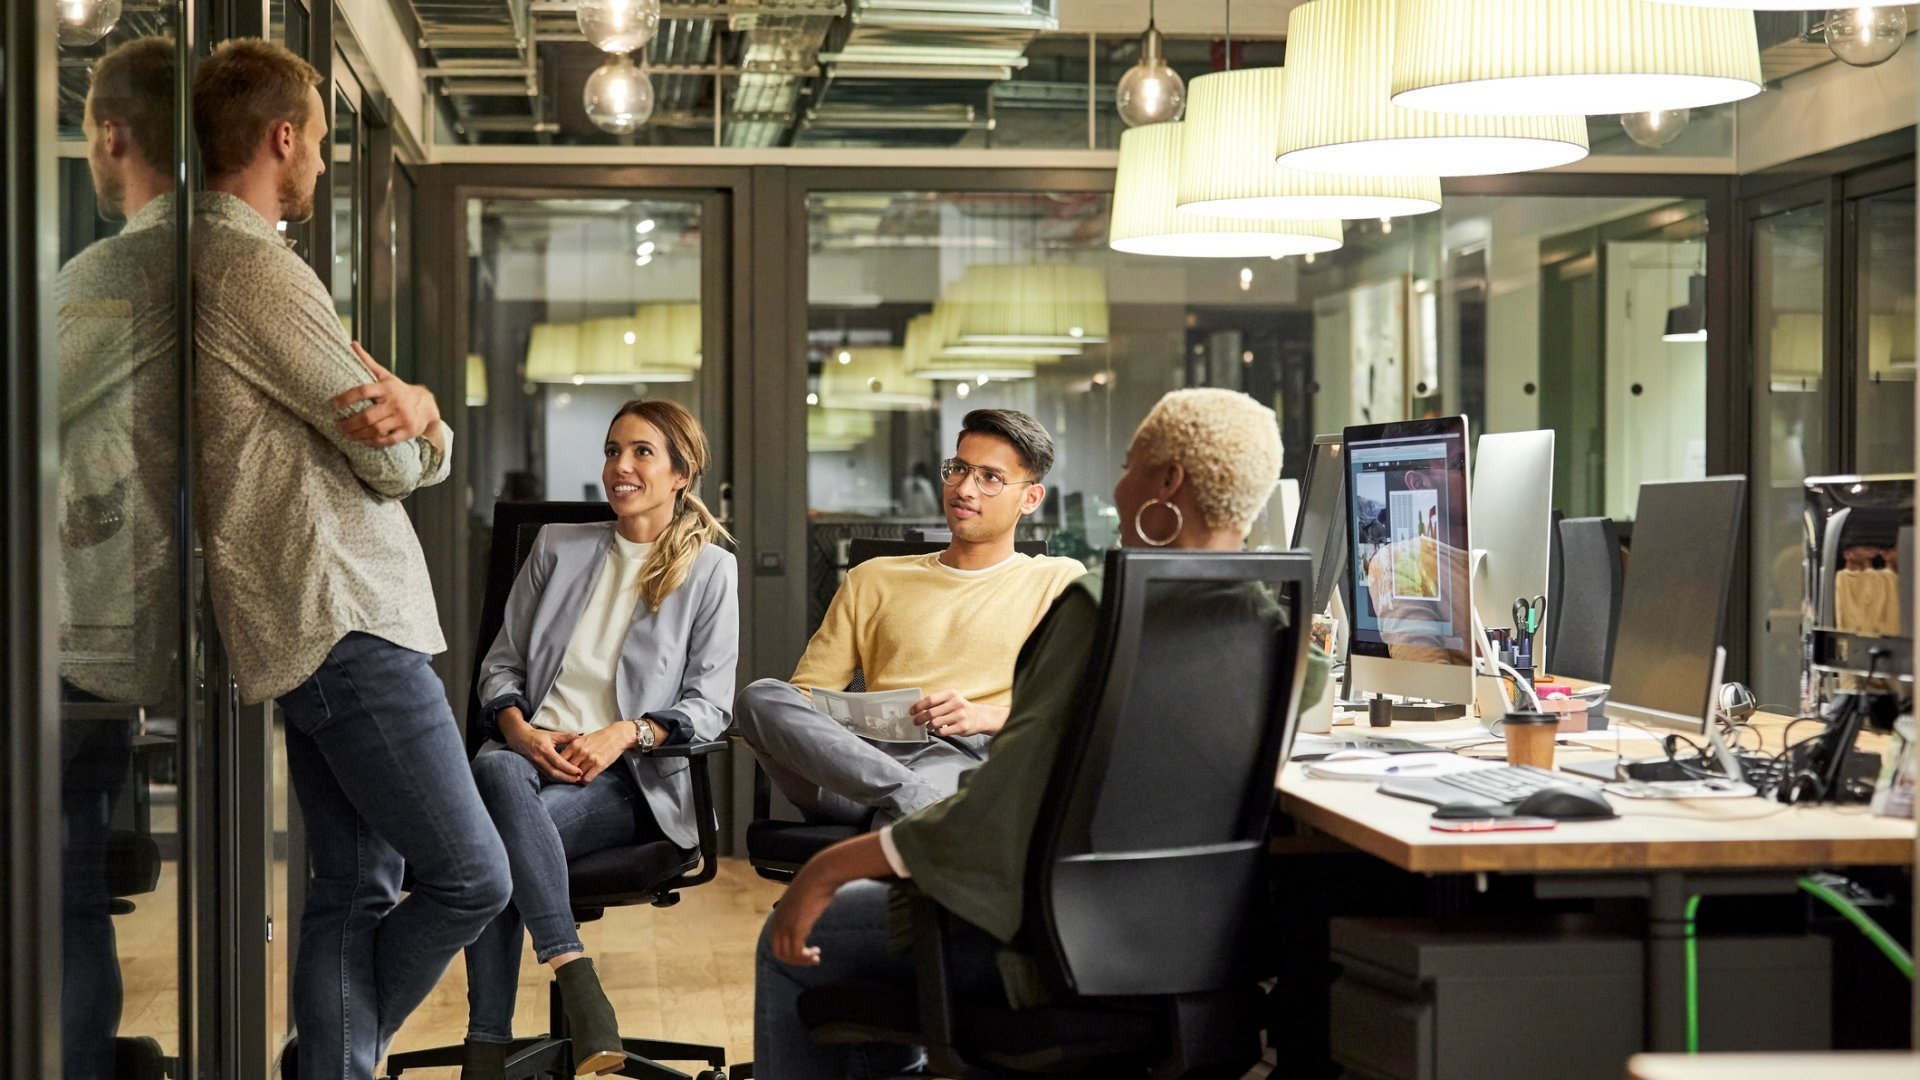 3 Signs That Your Workplace Culture Will Bring Better Business Results